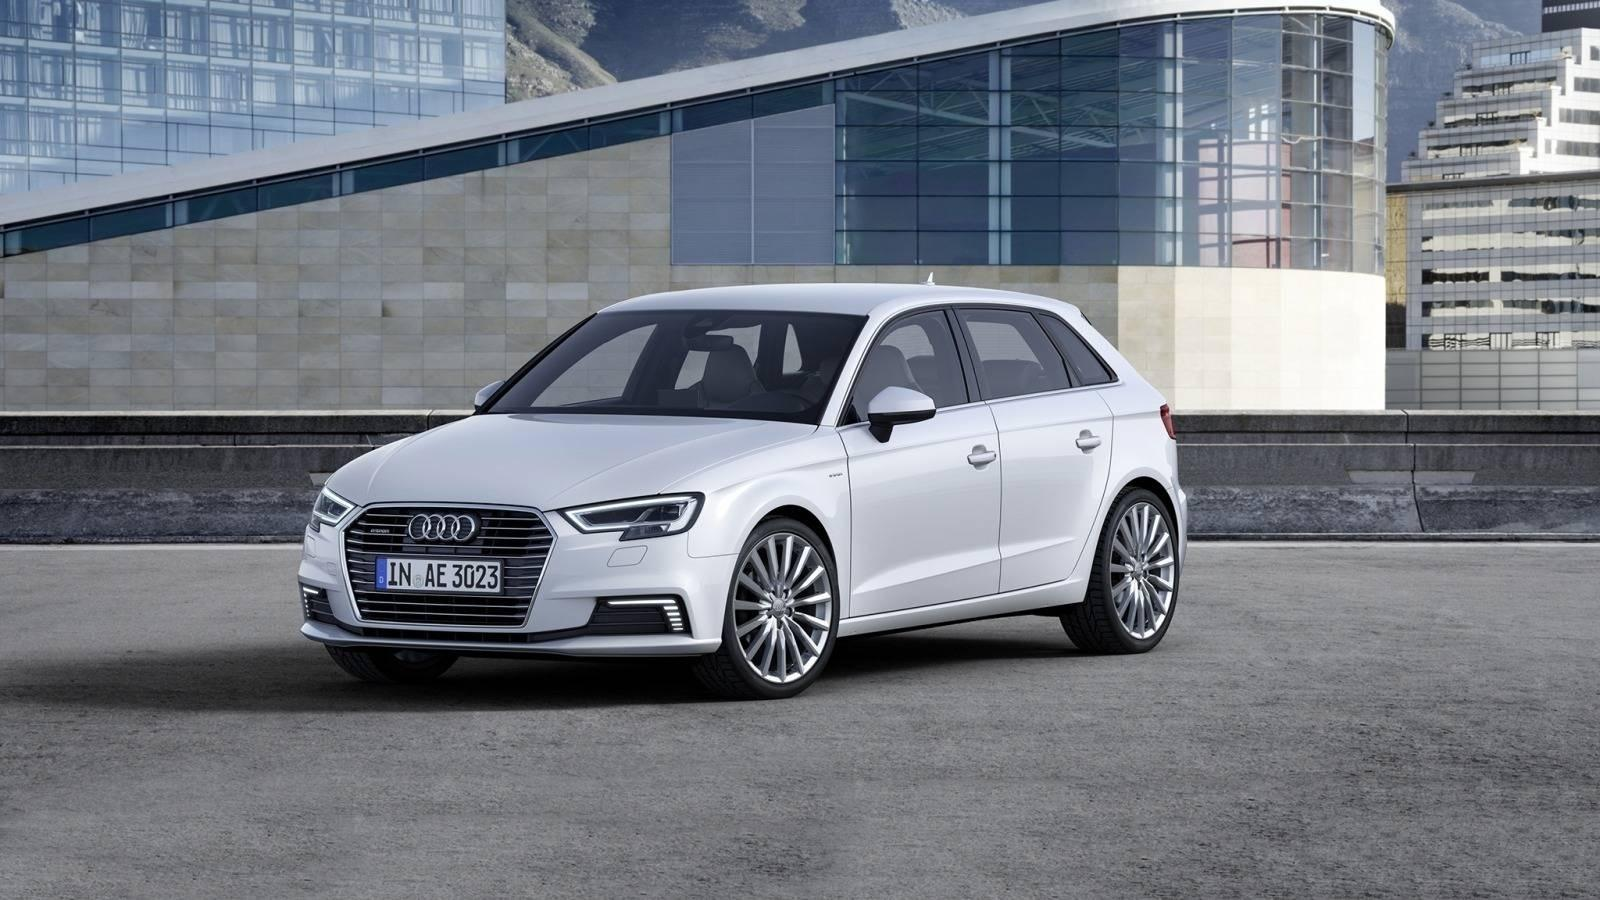 2019 Audi A3 Sportback E Tron Overview and Price